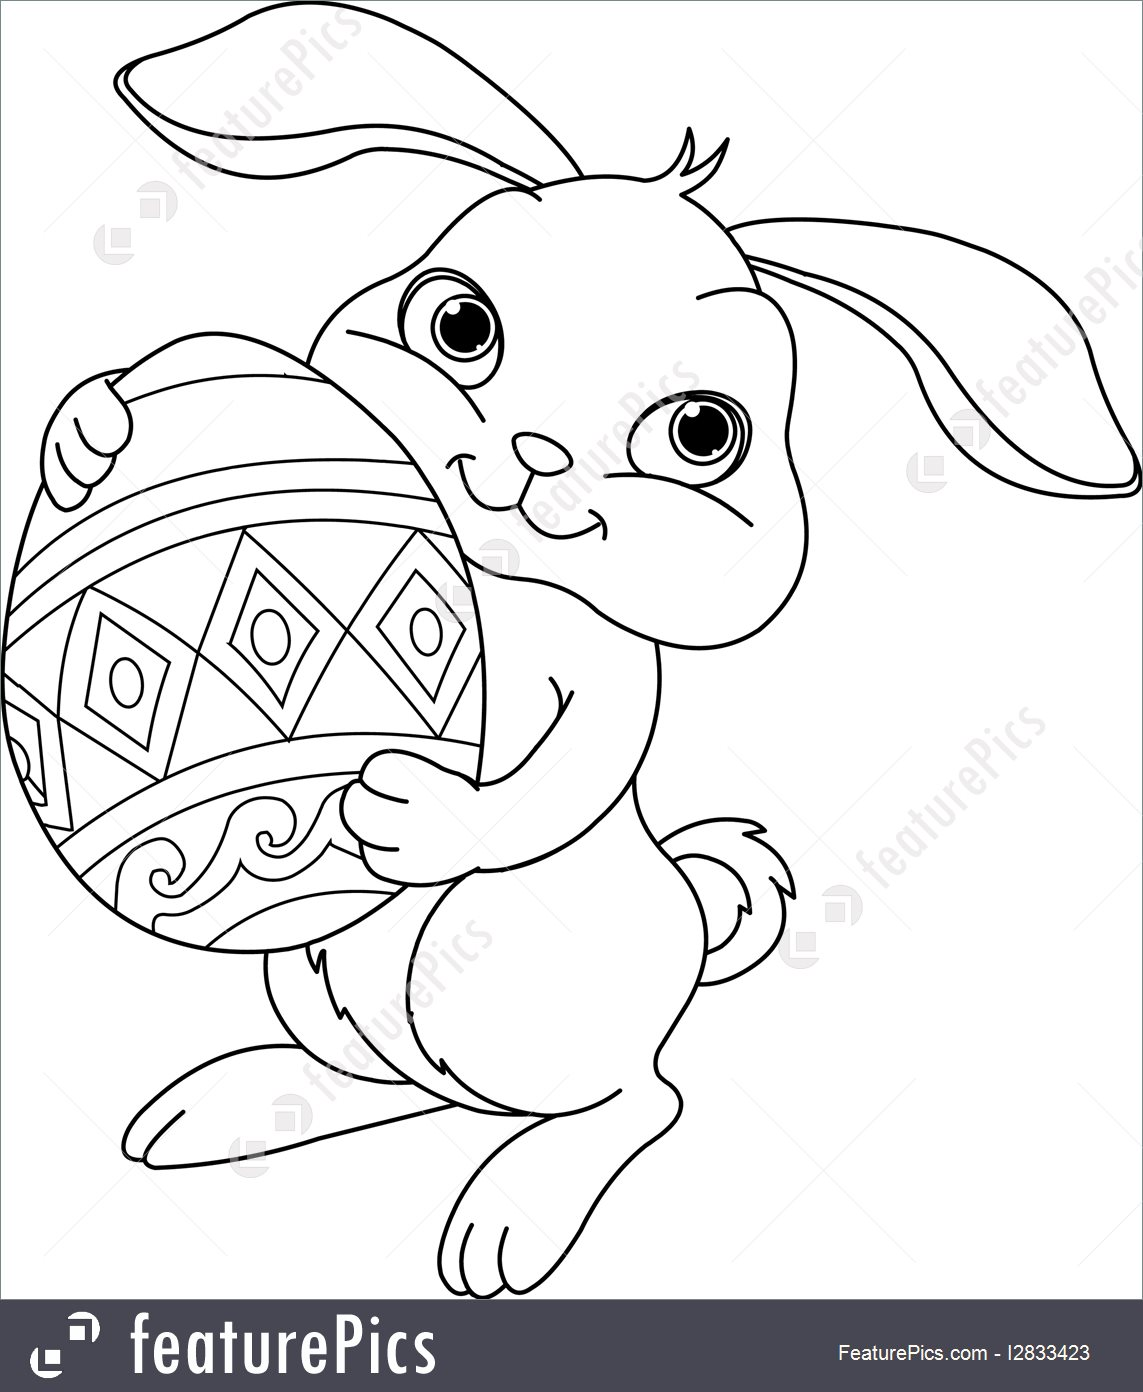 Bunny Head Coloring Pages At Getcolorings